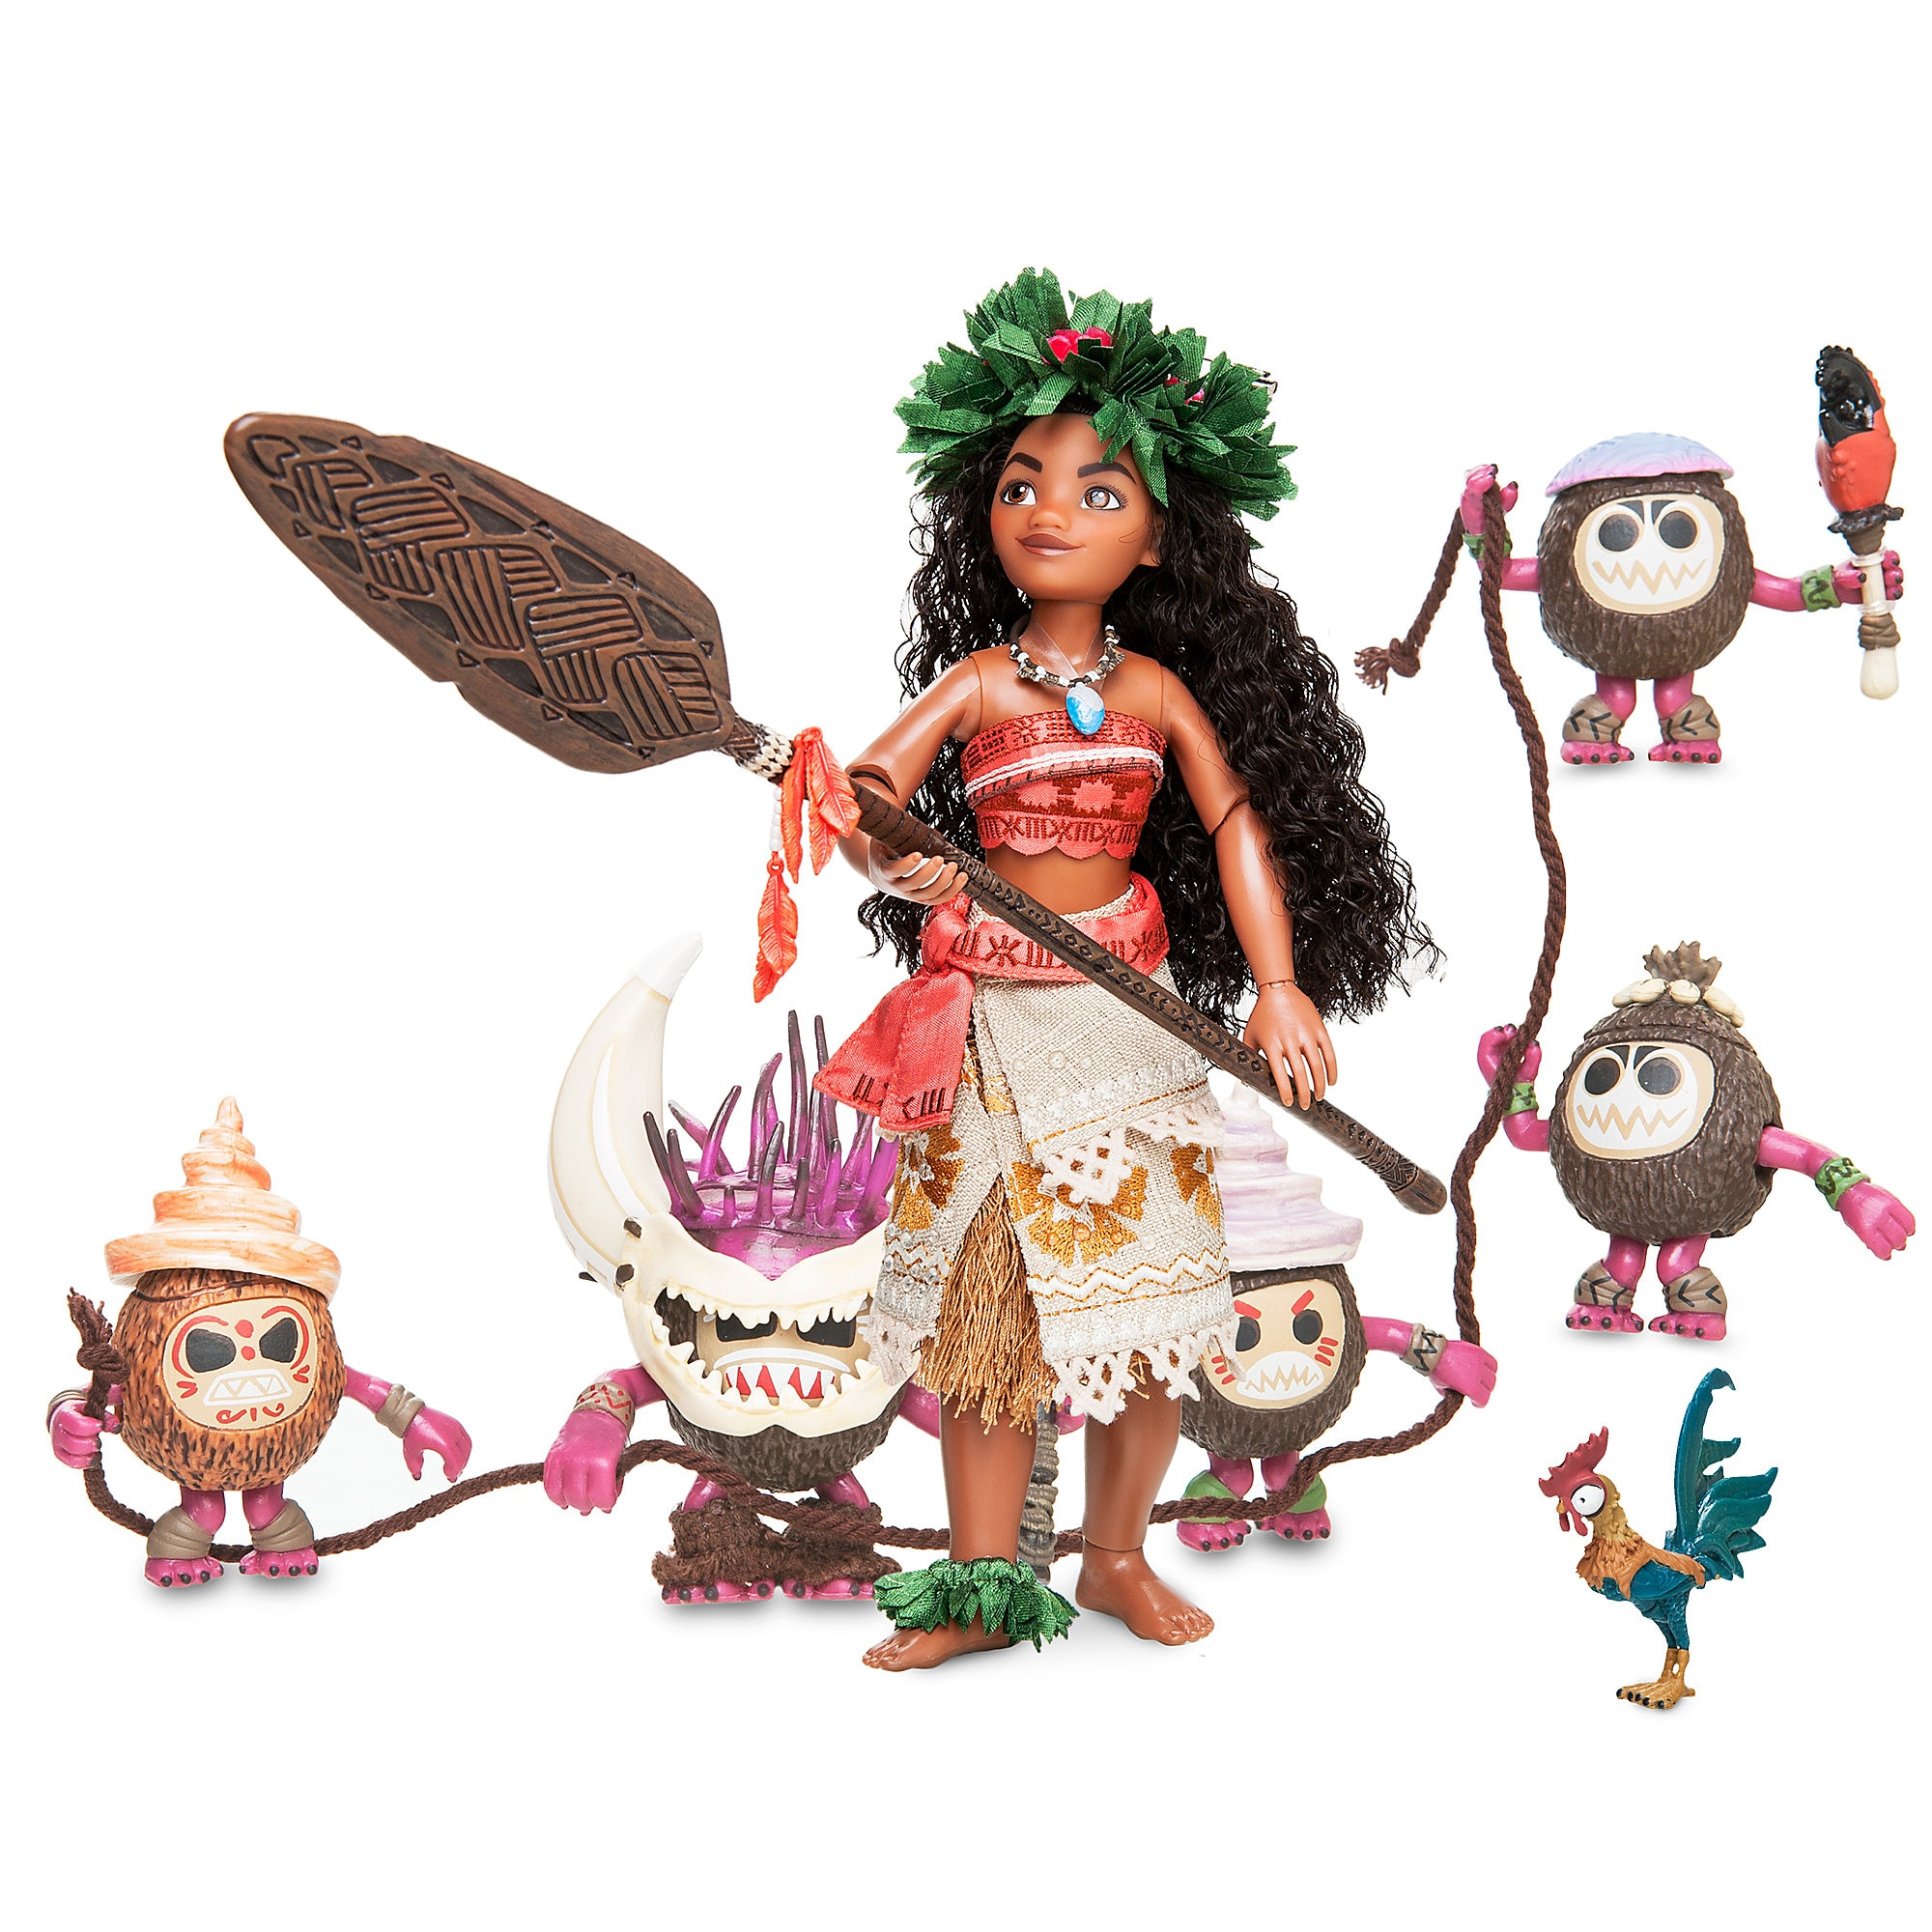 Moana and Heihei Doll Set - Disney Designer Fairytale Collection - Limited Edition